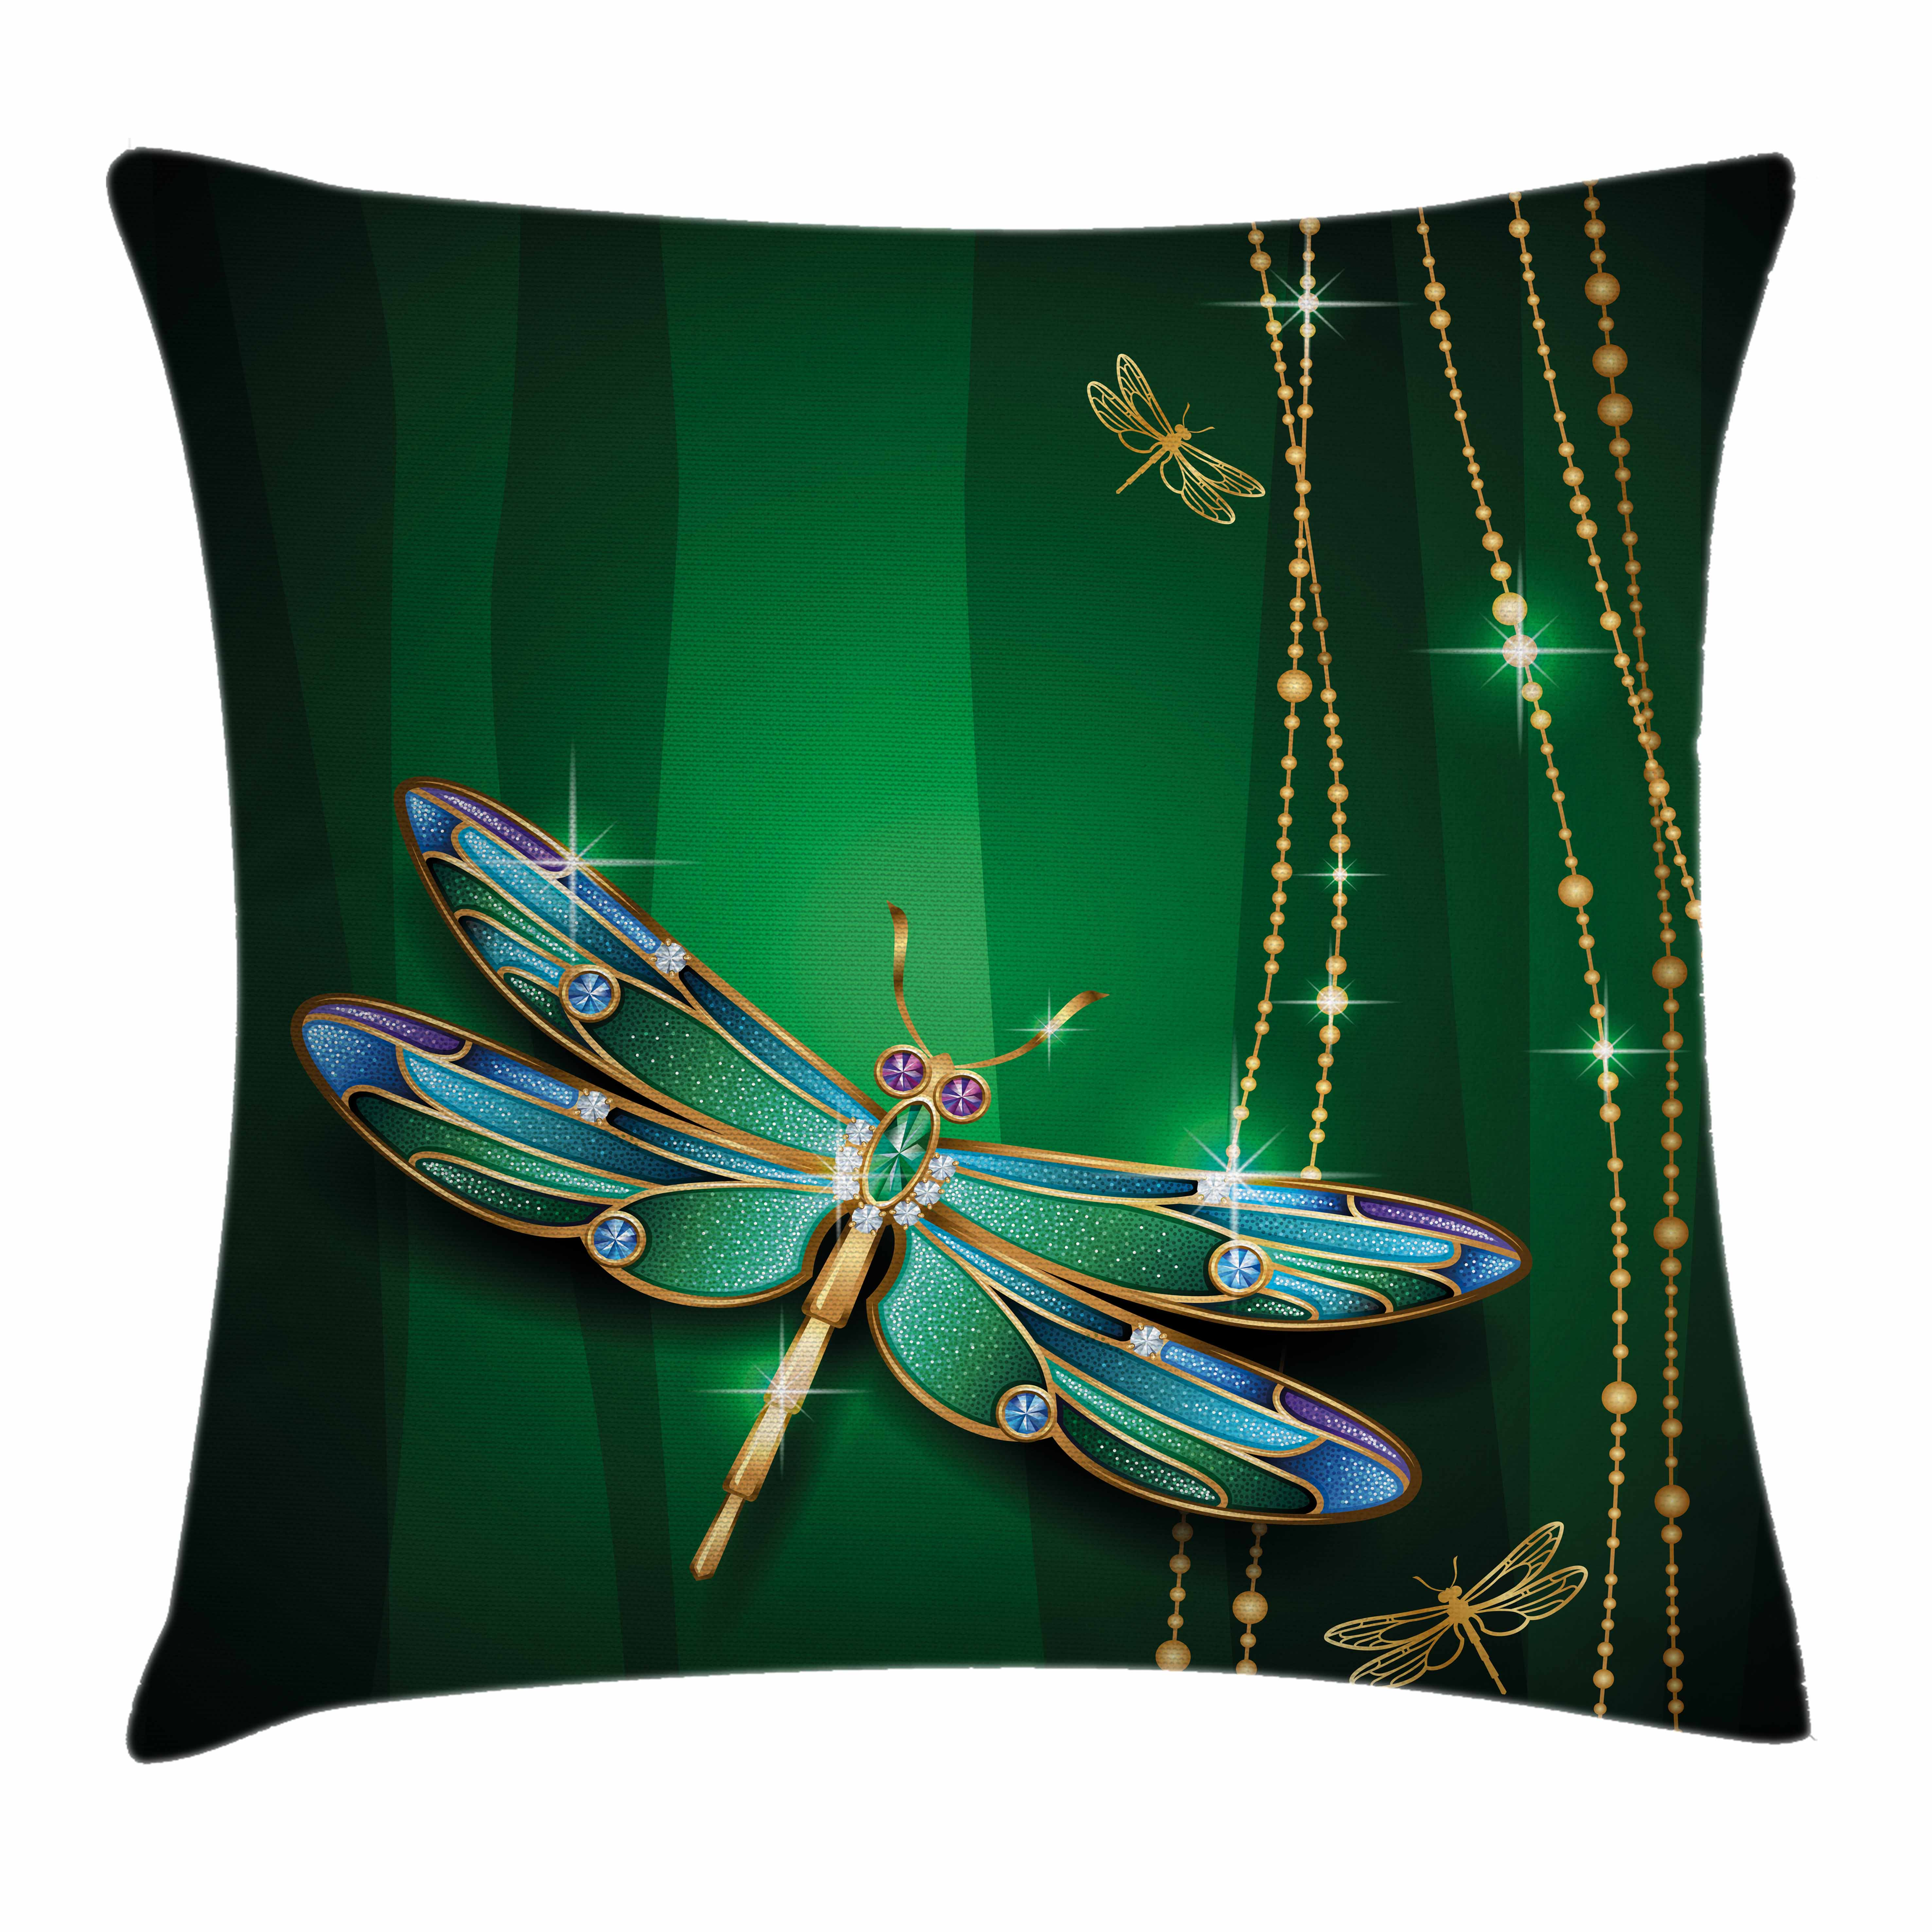 Dragonfly Throw Pillow Cushion Cover, Vivid Figures in Gemstone Crystal Diamond Shapes Graphic Artsy Effects, Decorative Square Accent Pillow Case, 18 X 18 Inches, Gold Hunter Green, by Ambesonne